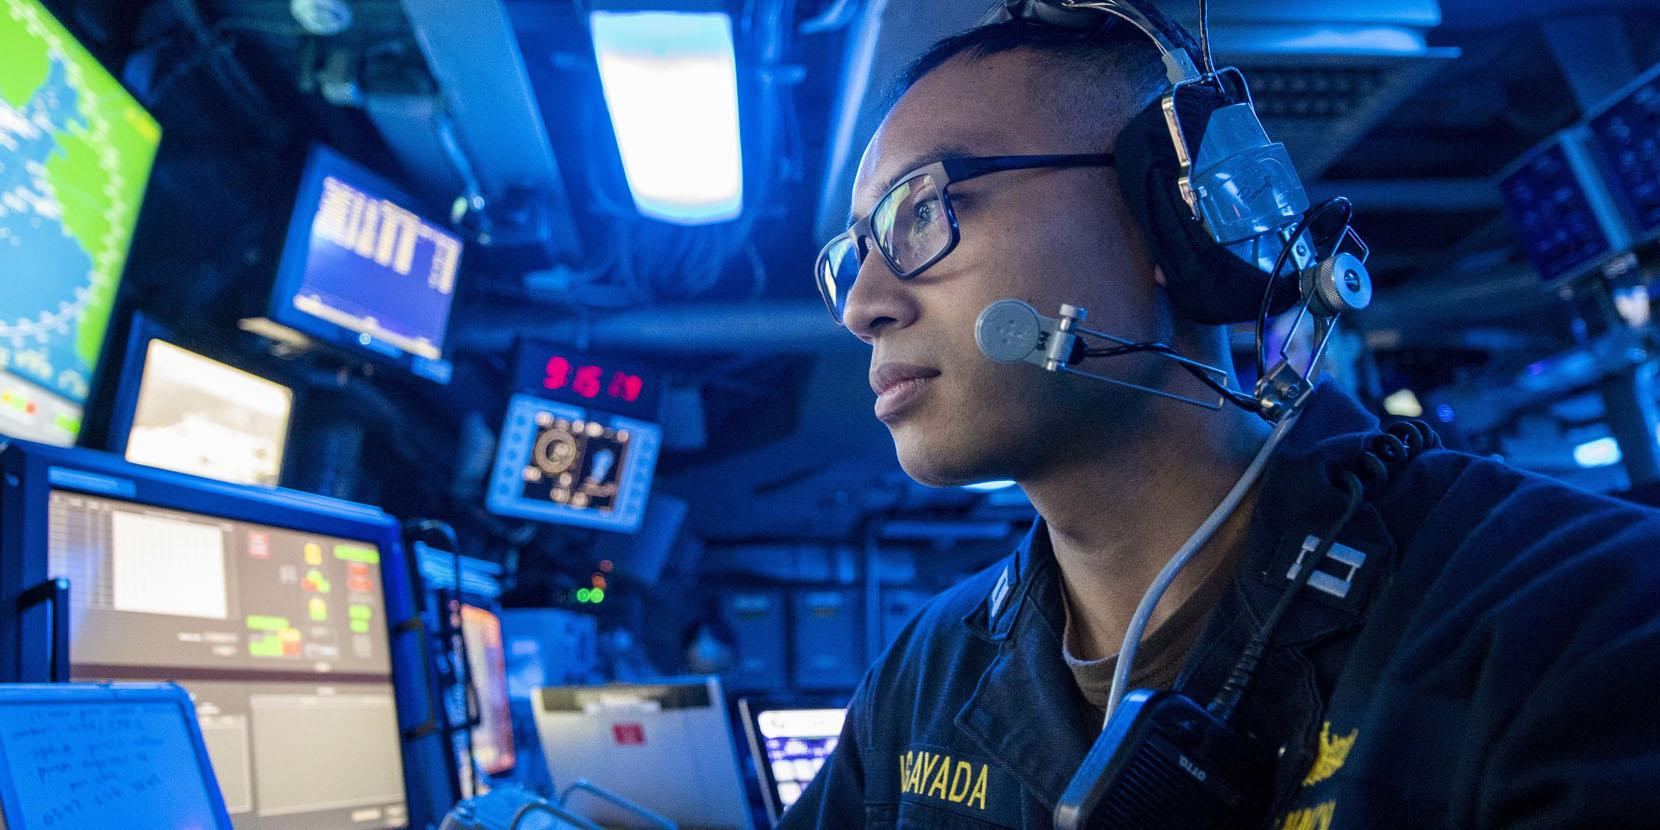 A U.S. Navy lieutenant stands watch in the command control center aboard an amphibious transport dock ship as part of the Boxer Amphibious Ready Group and 11th Marine Expeditionary Unit team. The Navy and the Marine Corps are undertaking a rebuild of their information technology capabilities in the face of increased global threats.